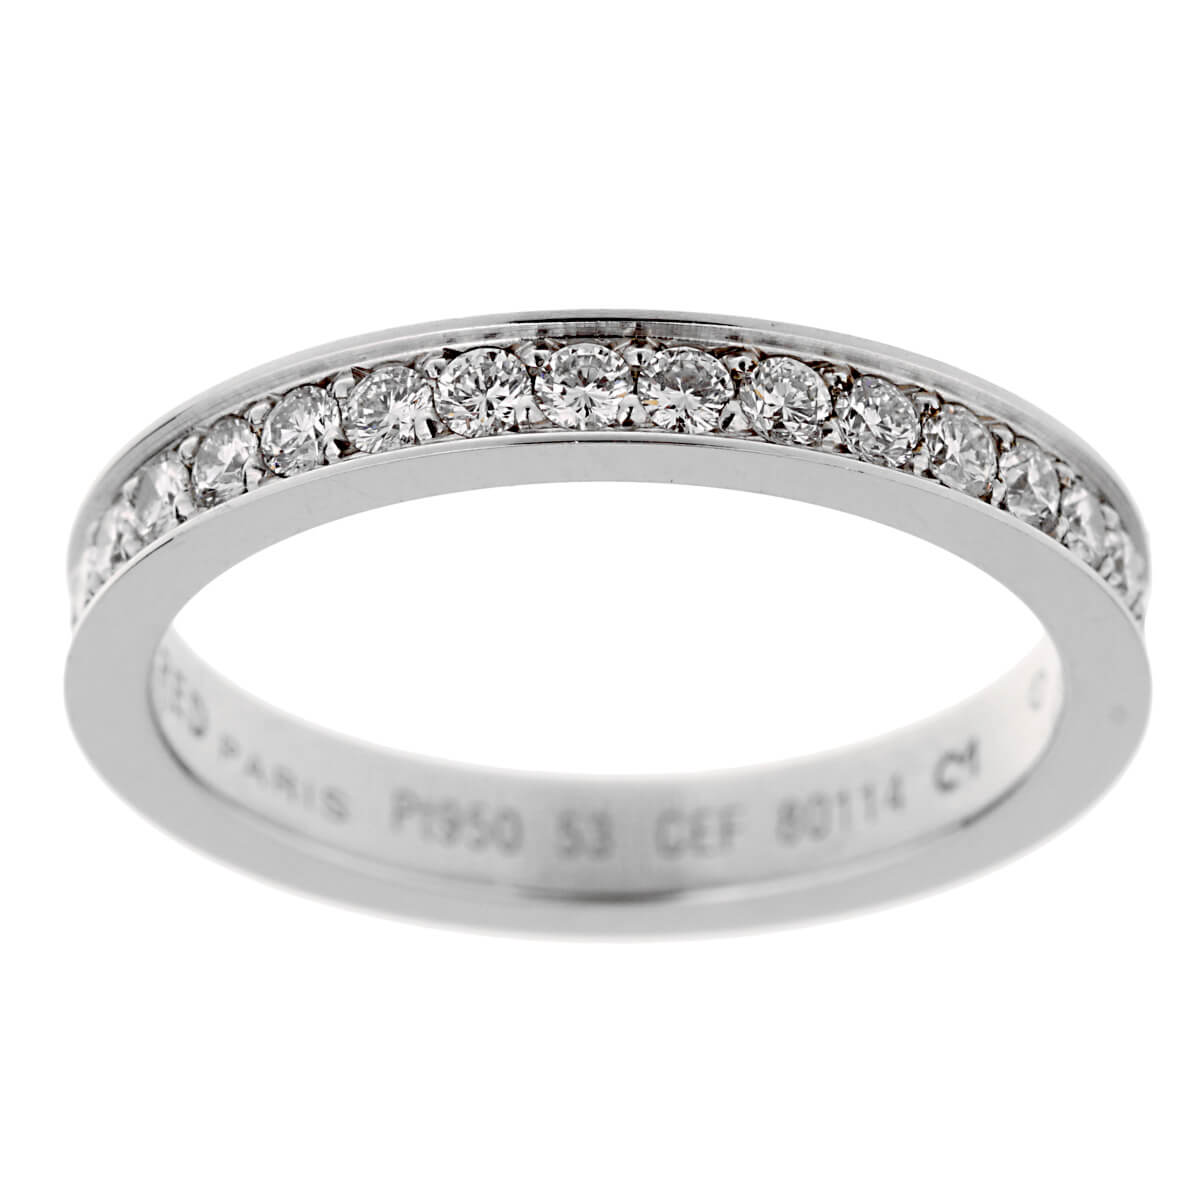 Fred of Paris Platinum Diamond Eternity Ring